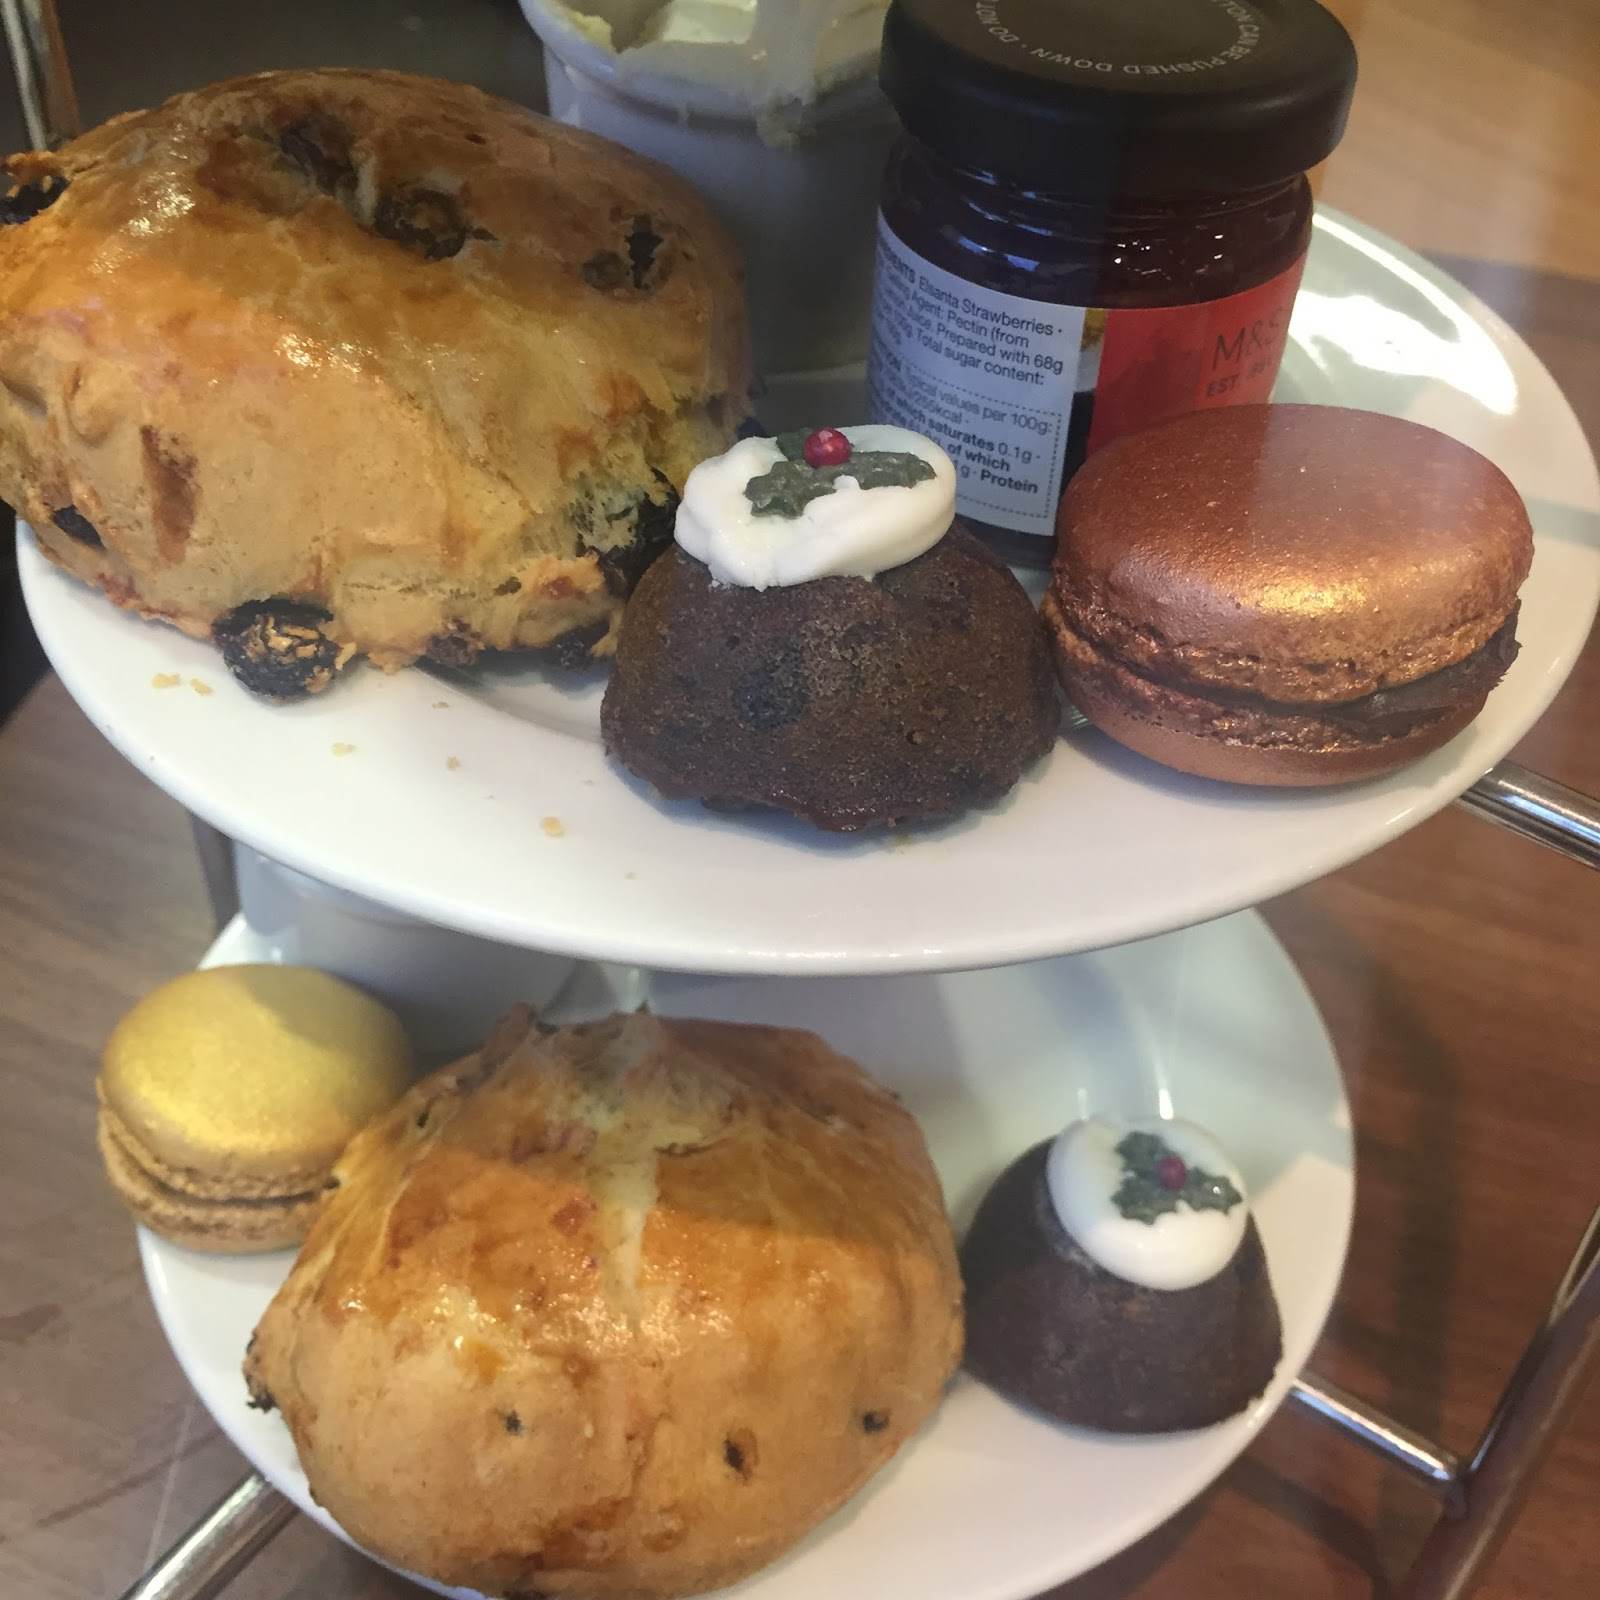 m&s marks & spencer cafe christmas afternoon tea kirstie pickering blog blogger bloggers